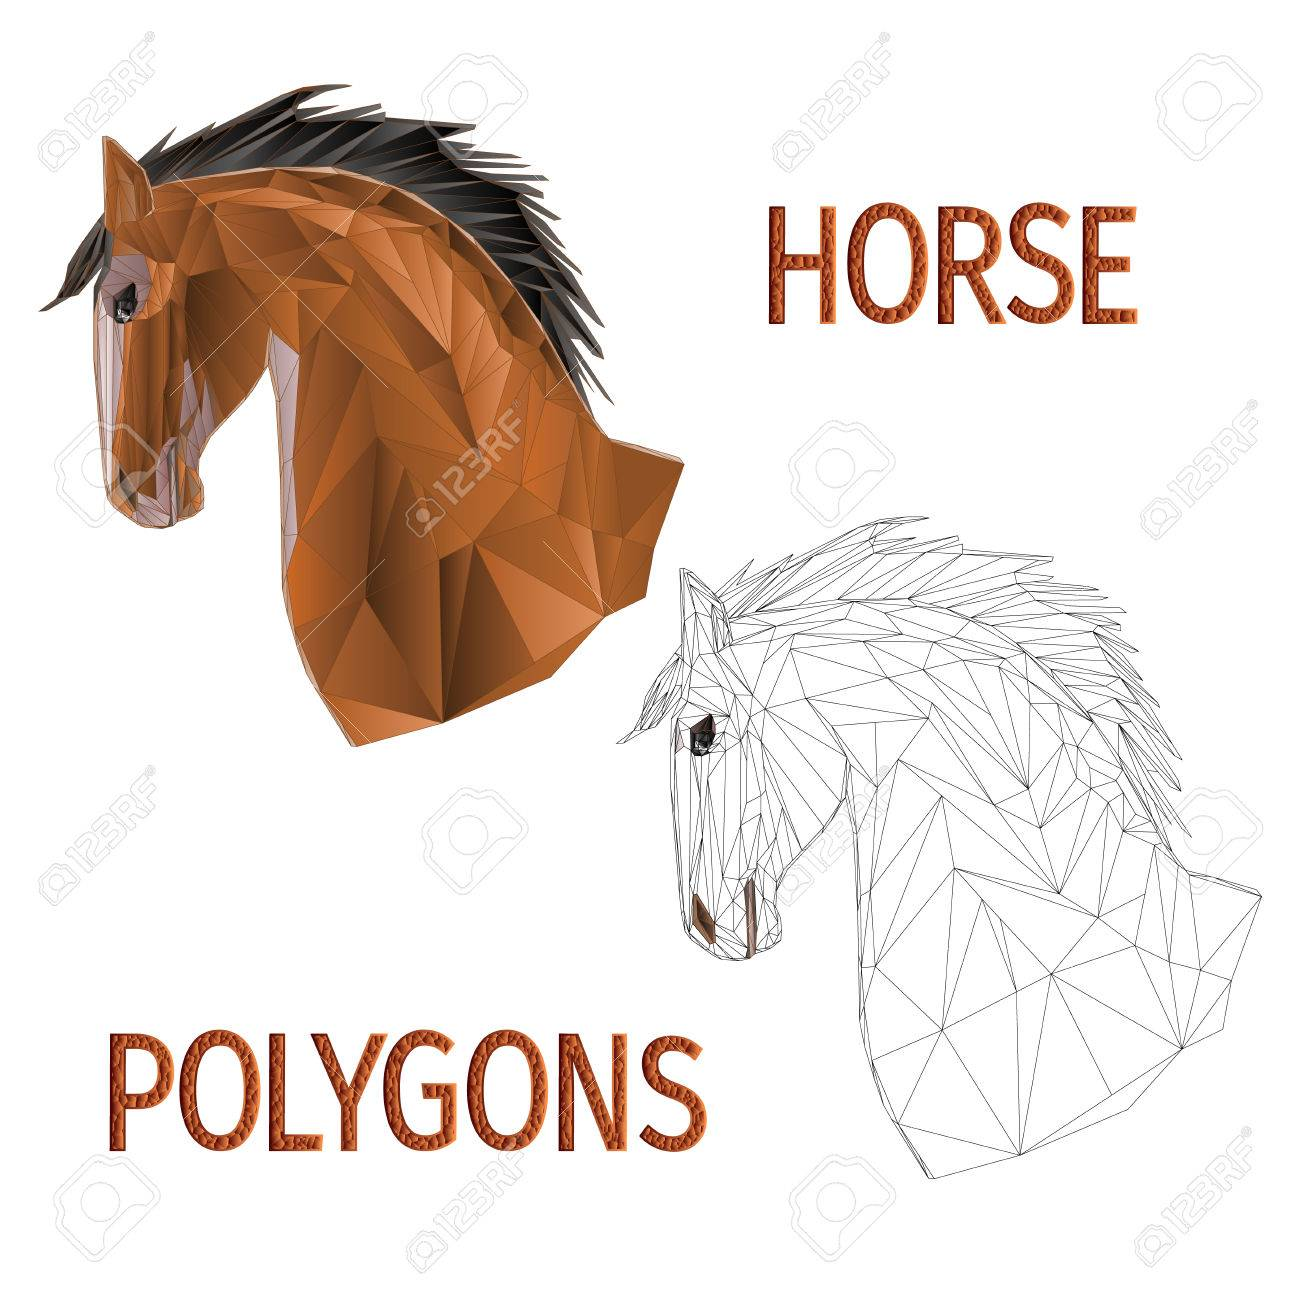 Brown Horse Head Polygons Coloured And Outline Vector Illustration Royalty Free Cliparts Vectors And Stock Illustration Image 71580745